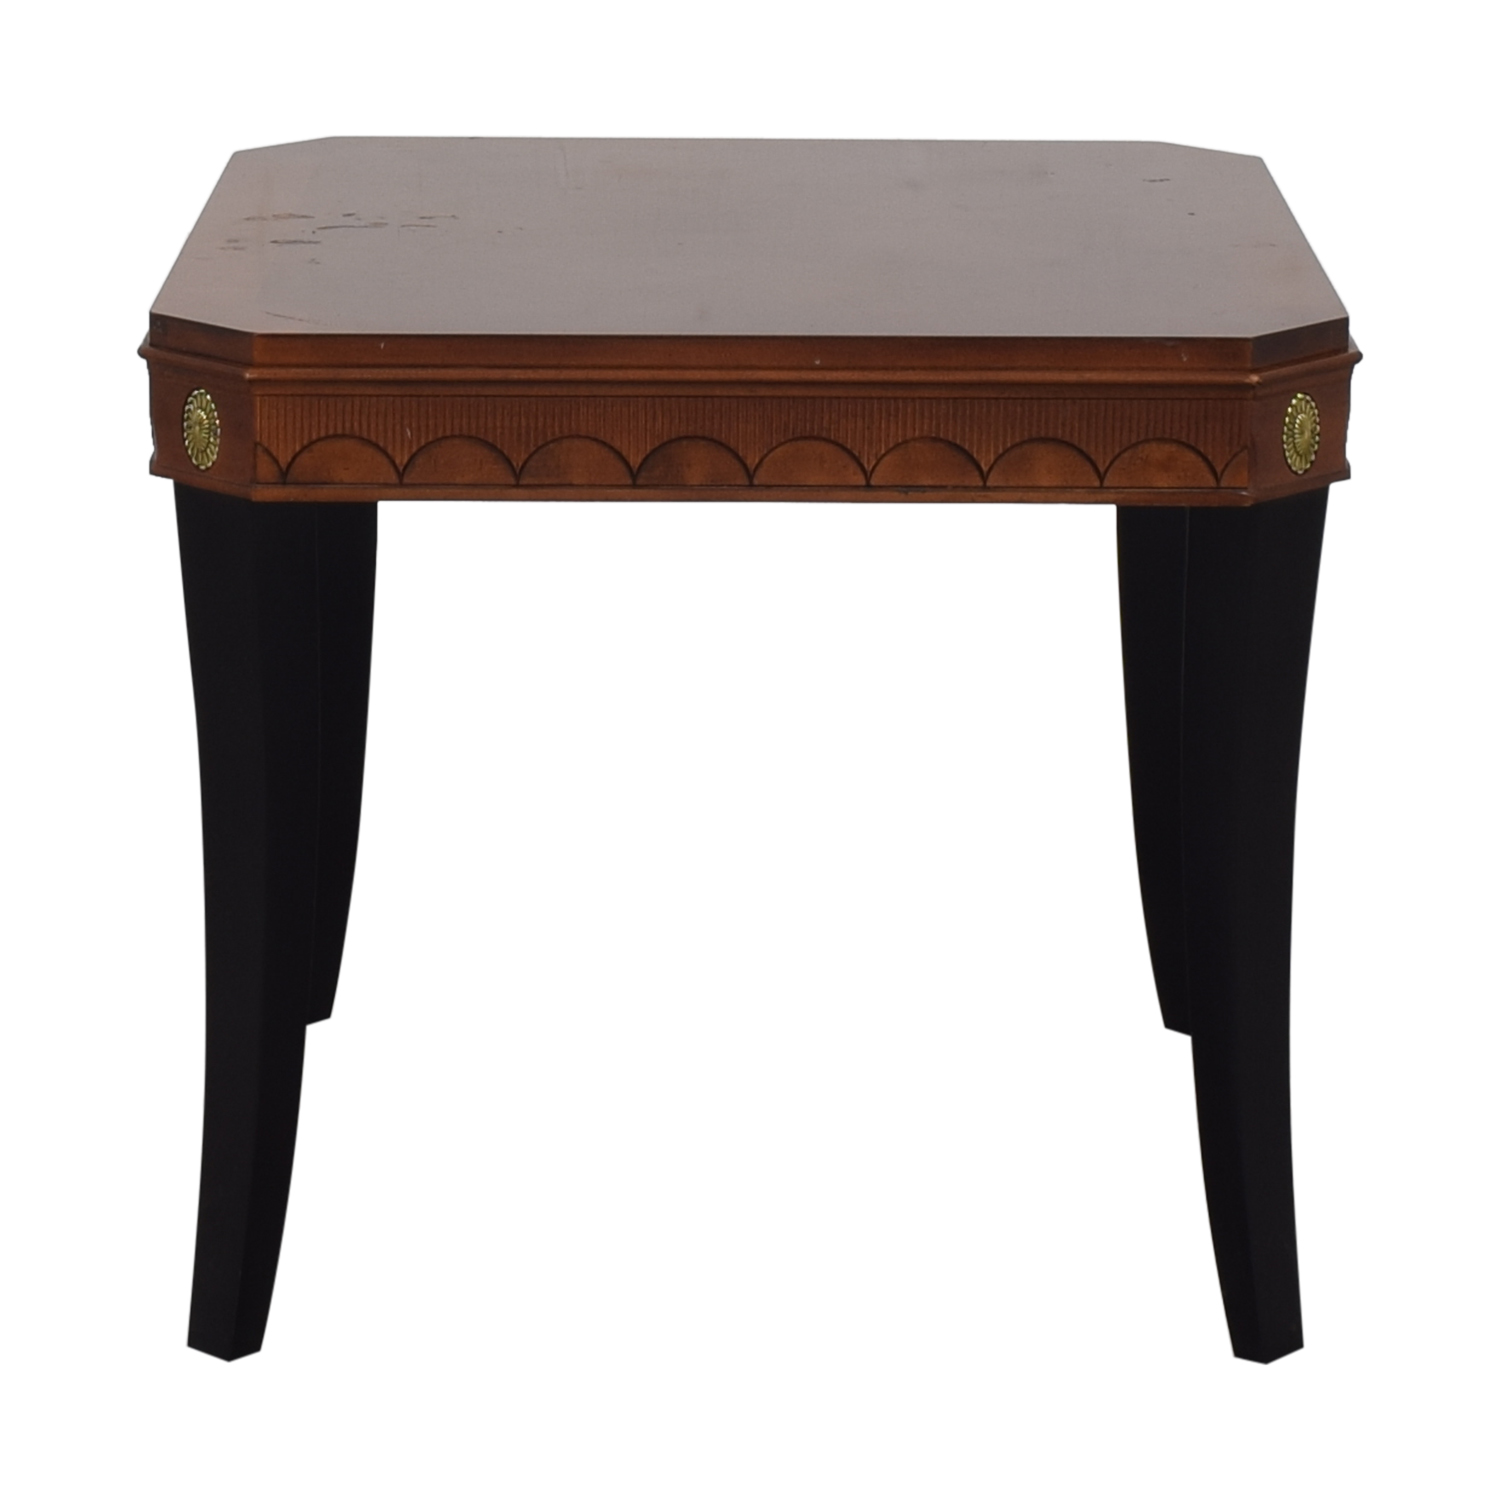 Ethan Allen End Table sale